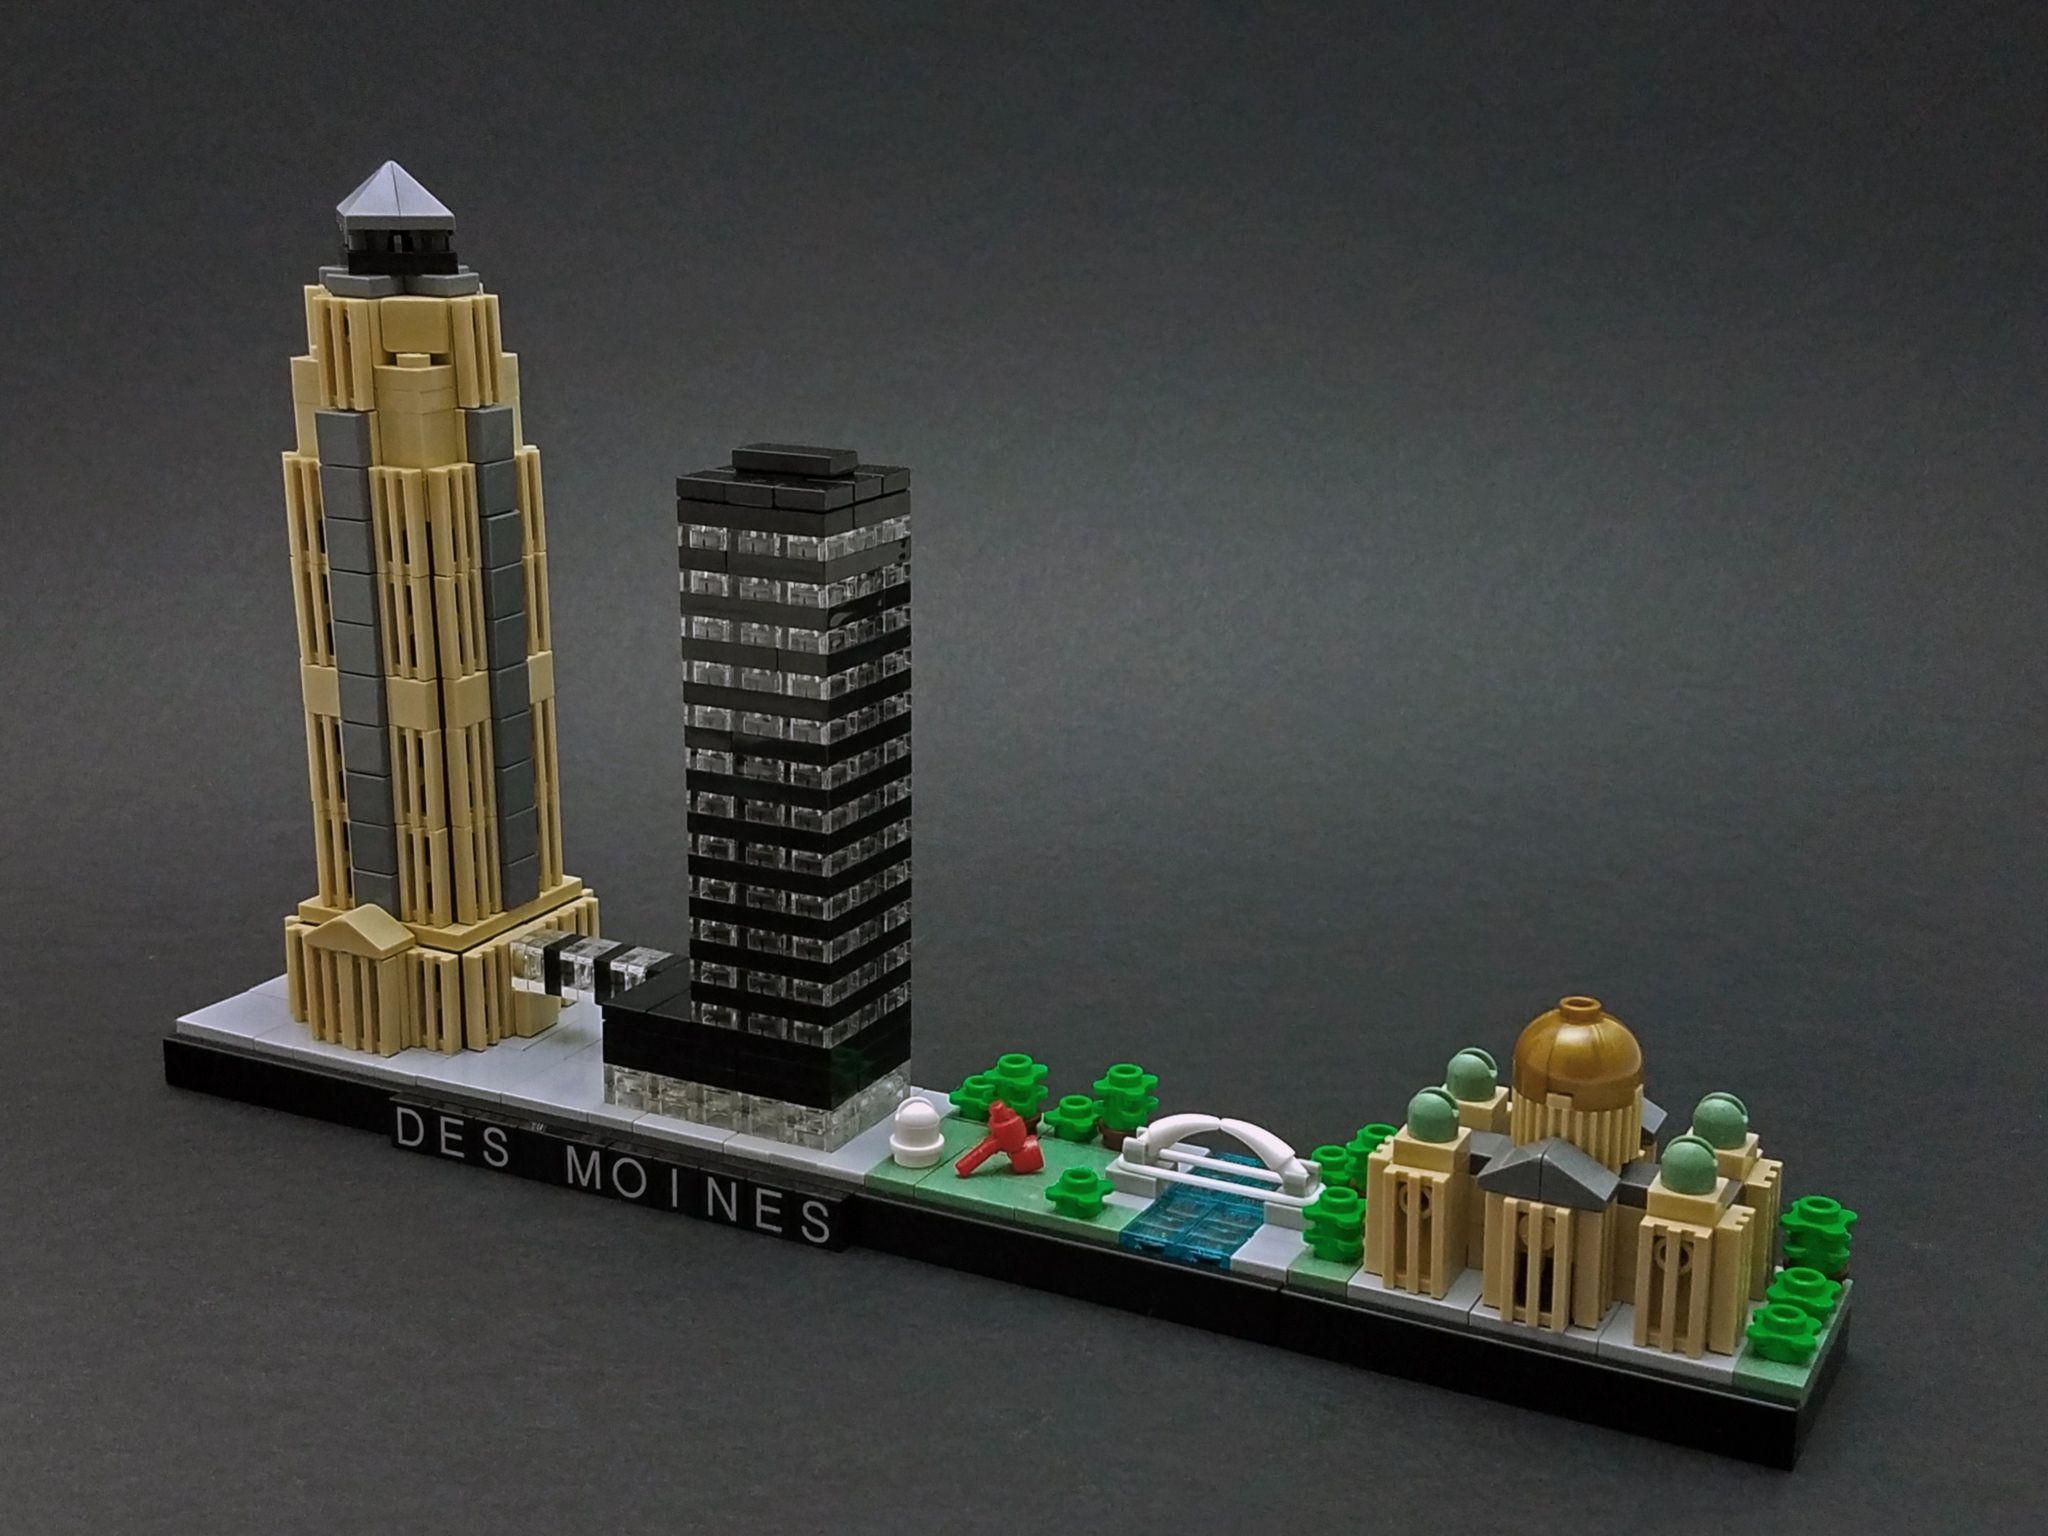 Https://flic.kr/p/WuHpQZ | Des Moines Skyline | Built For The Rebrick  Skyline Contest. Featuring (left To Right) 801 Grand, The Ruan Center (with  An Example ...